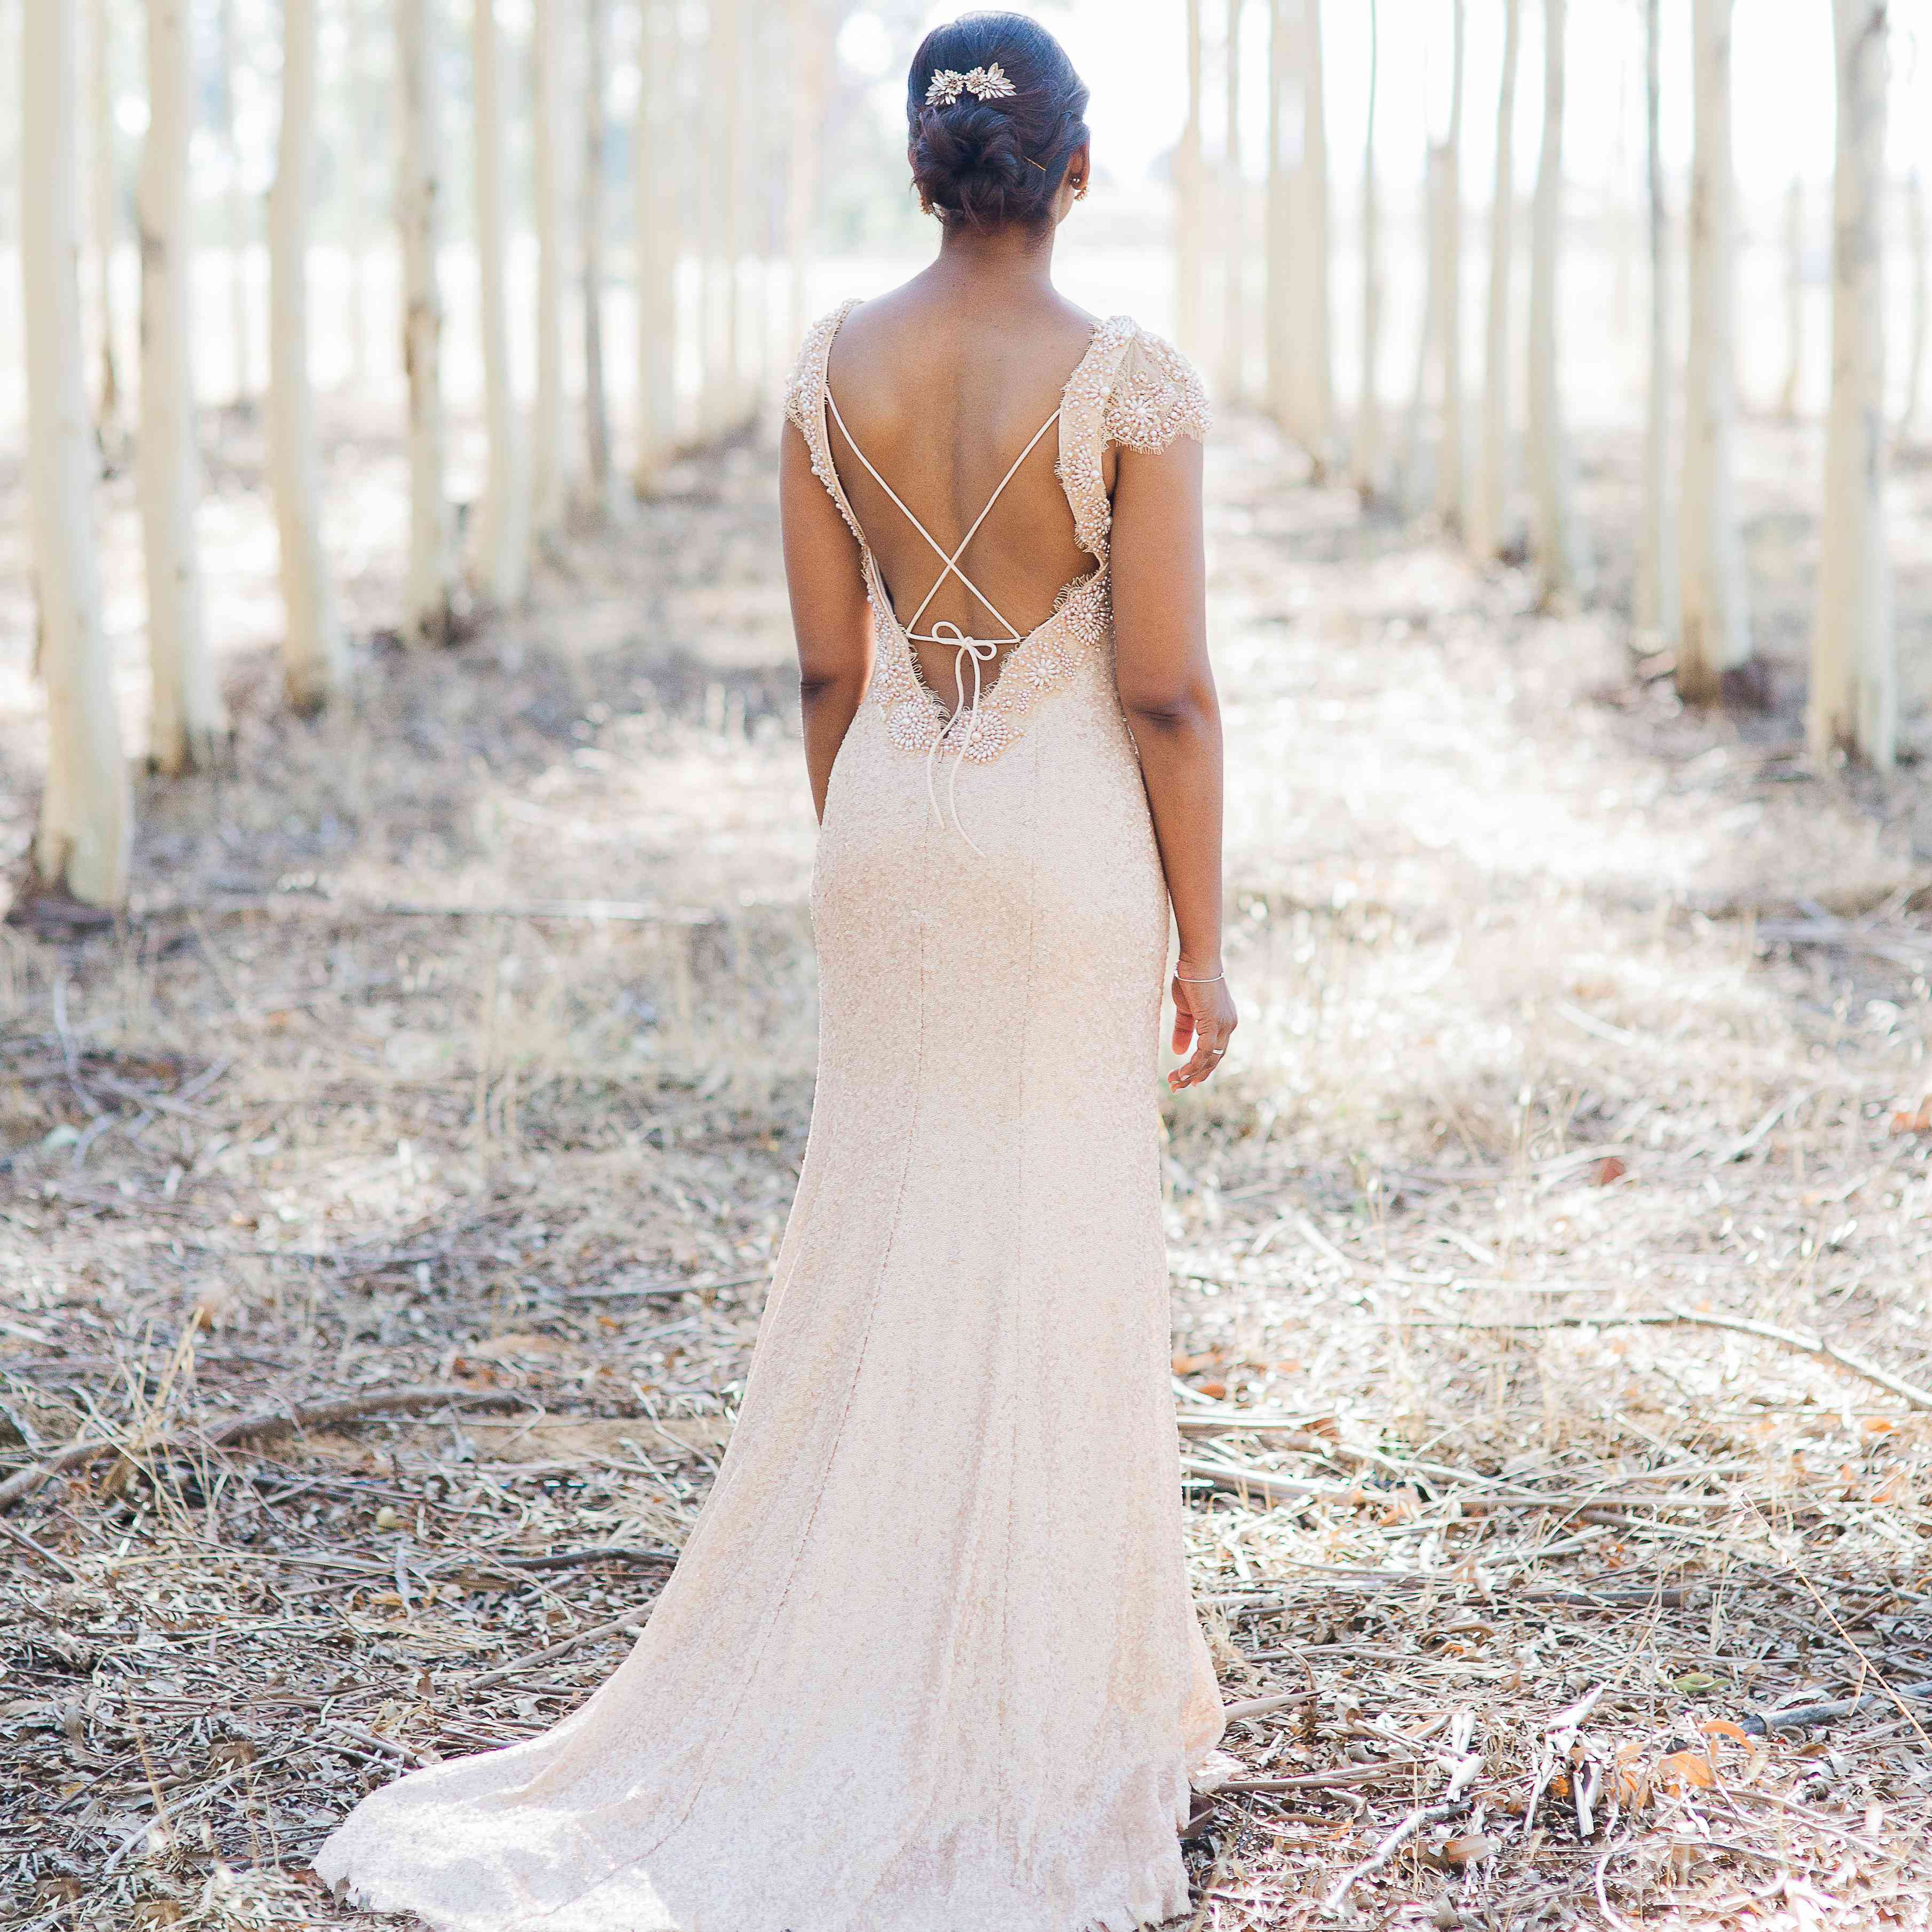 Backless Wedding Dresses.17 Real Brides Who Wore Swoon Worthy Backless Wedding Dresses